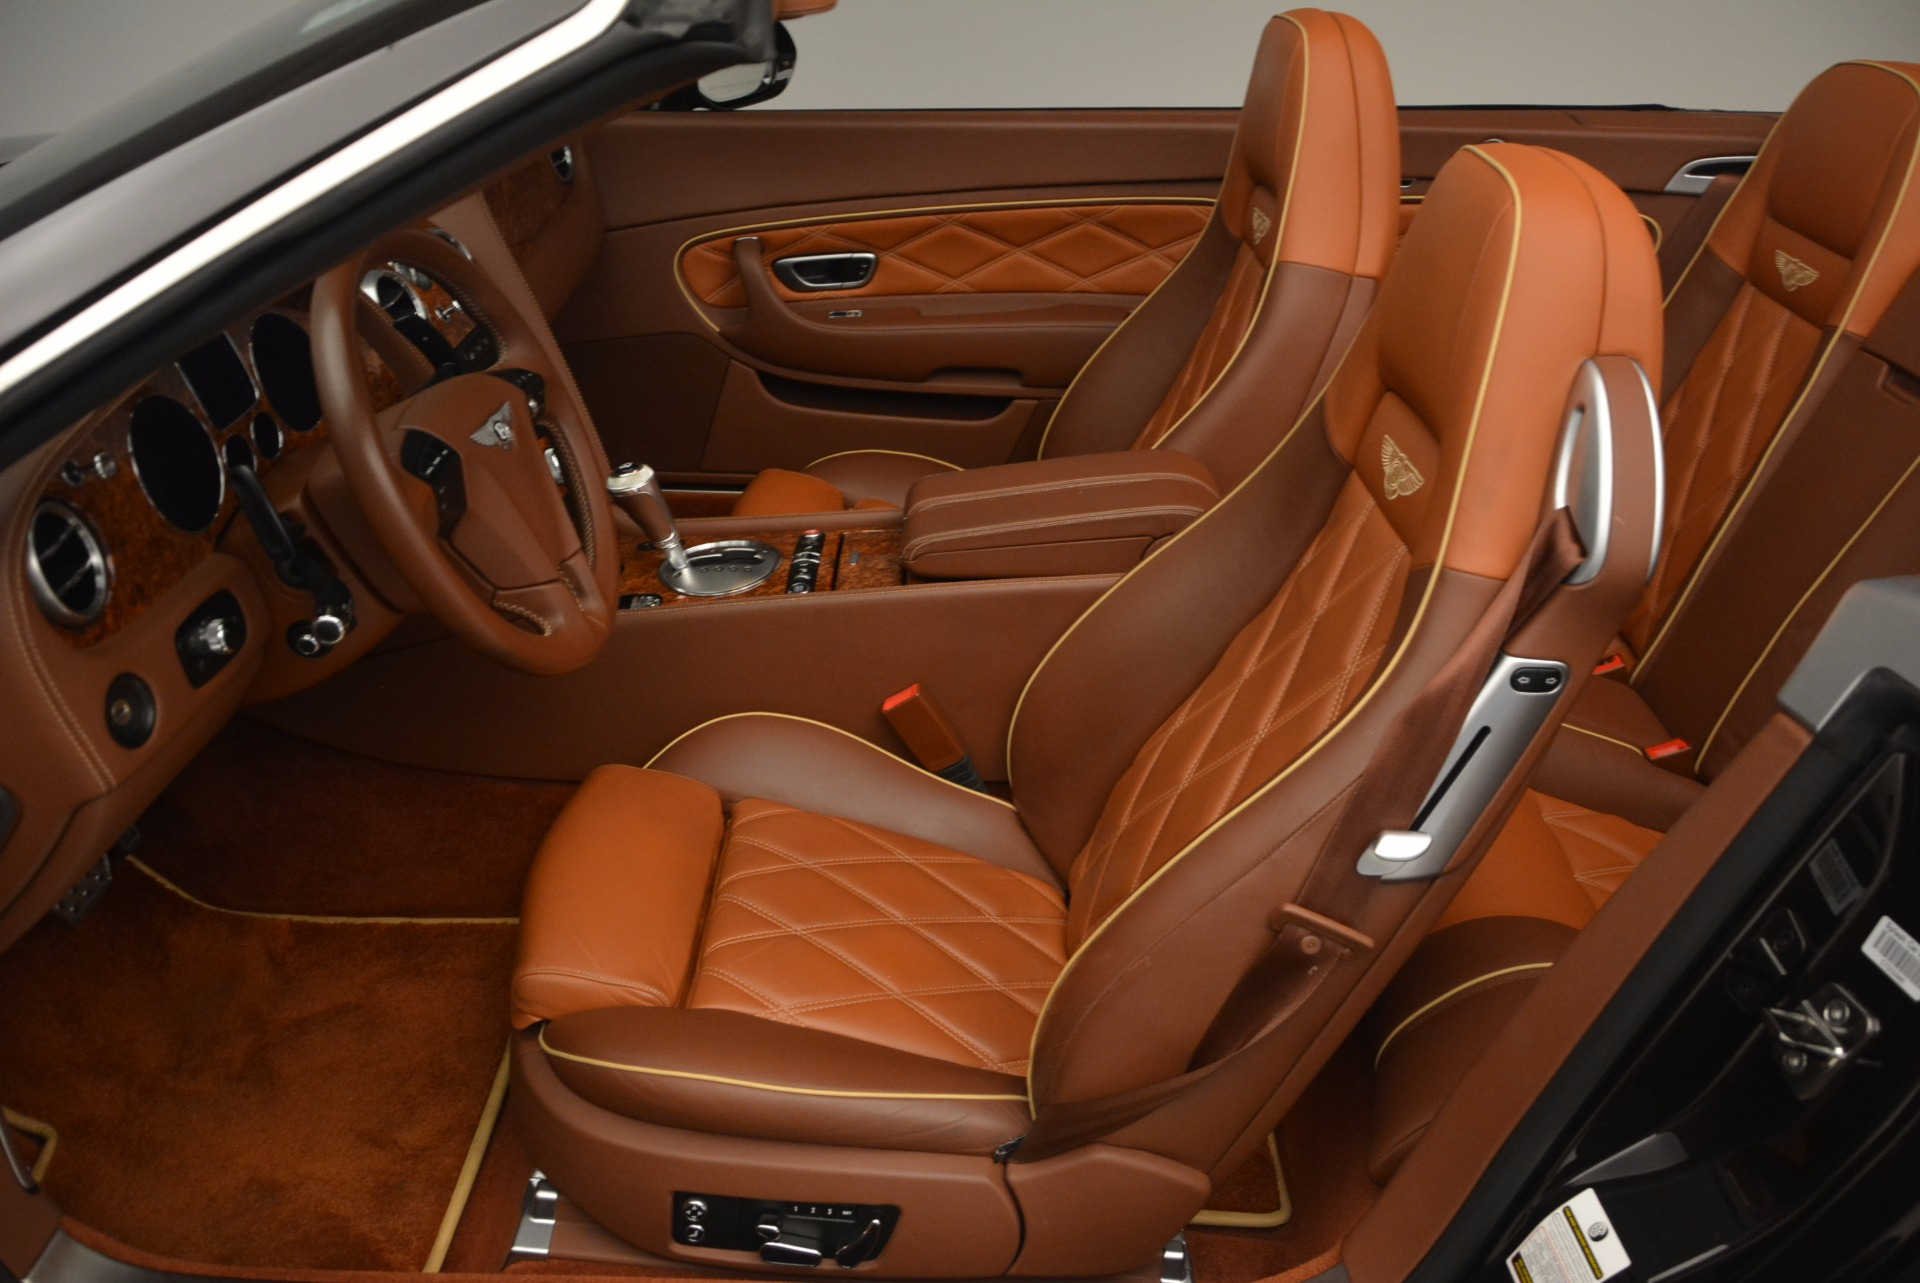 Used 2010 Bentley Continental GT Series 51 For Sale In Greenwich, CT. Alfa Romeo of Greenwich, 7219 1222_p33